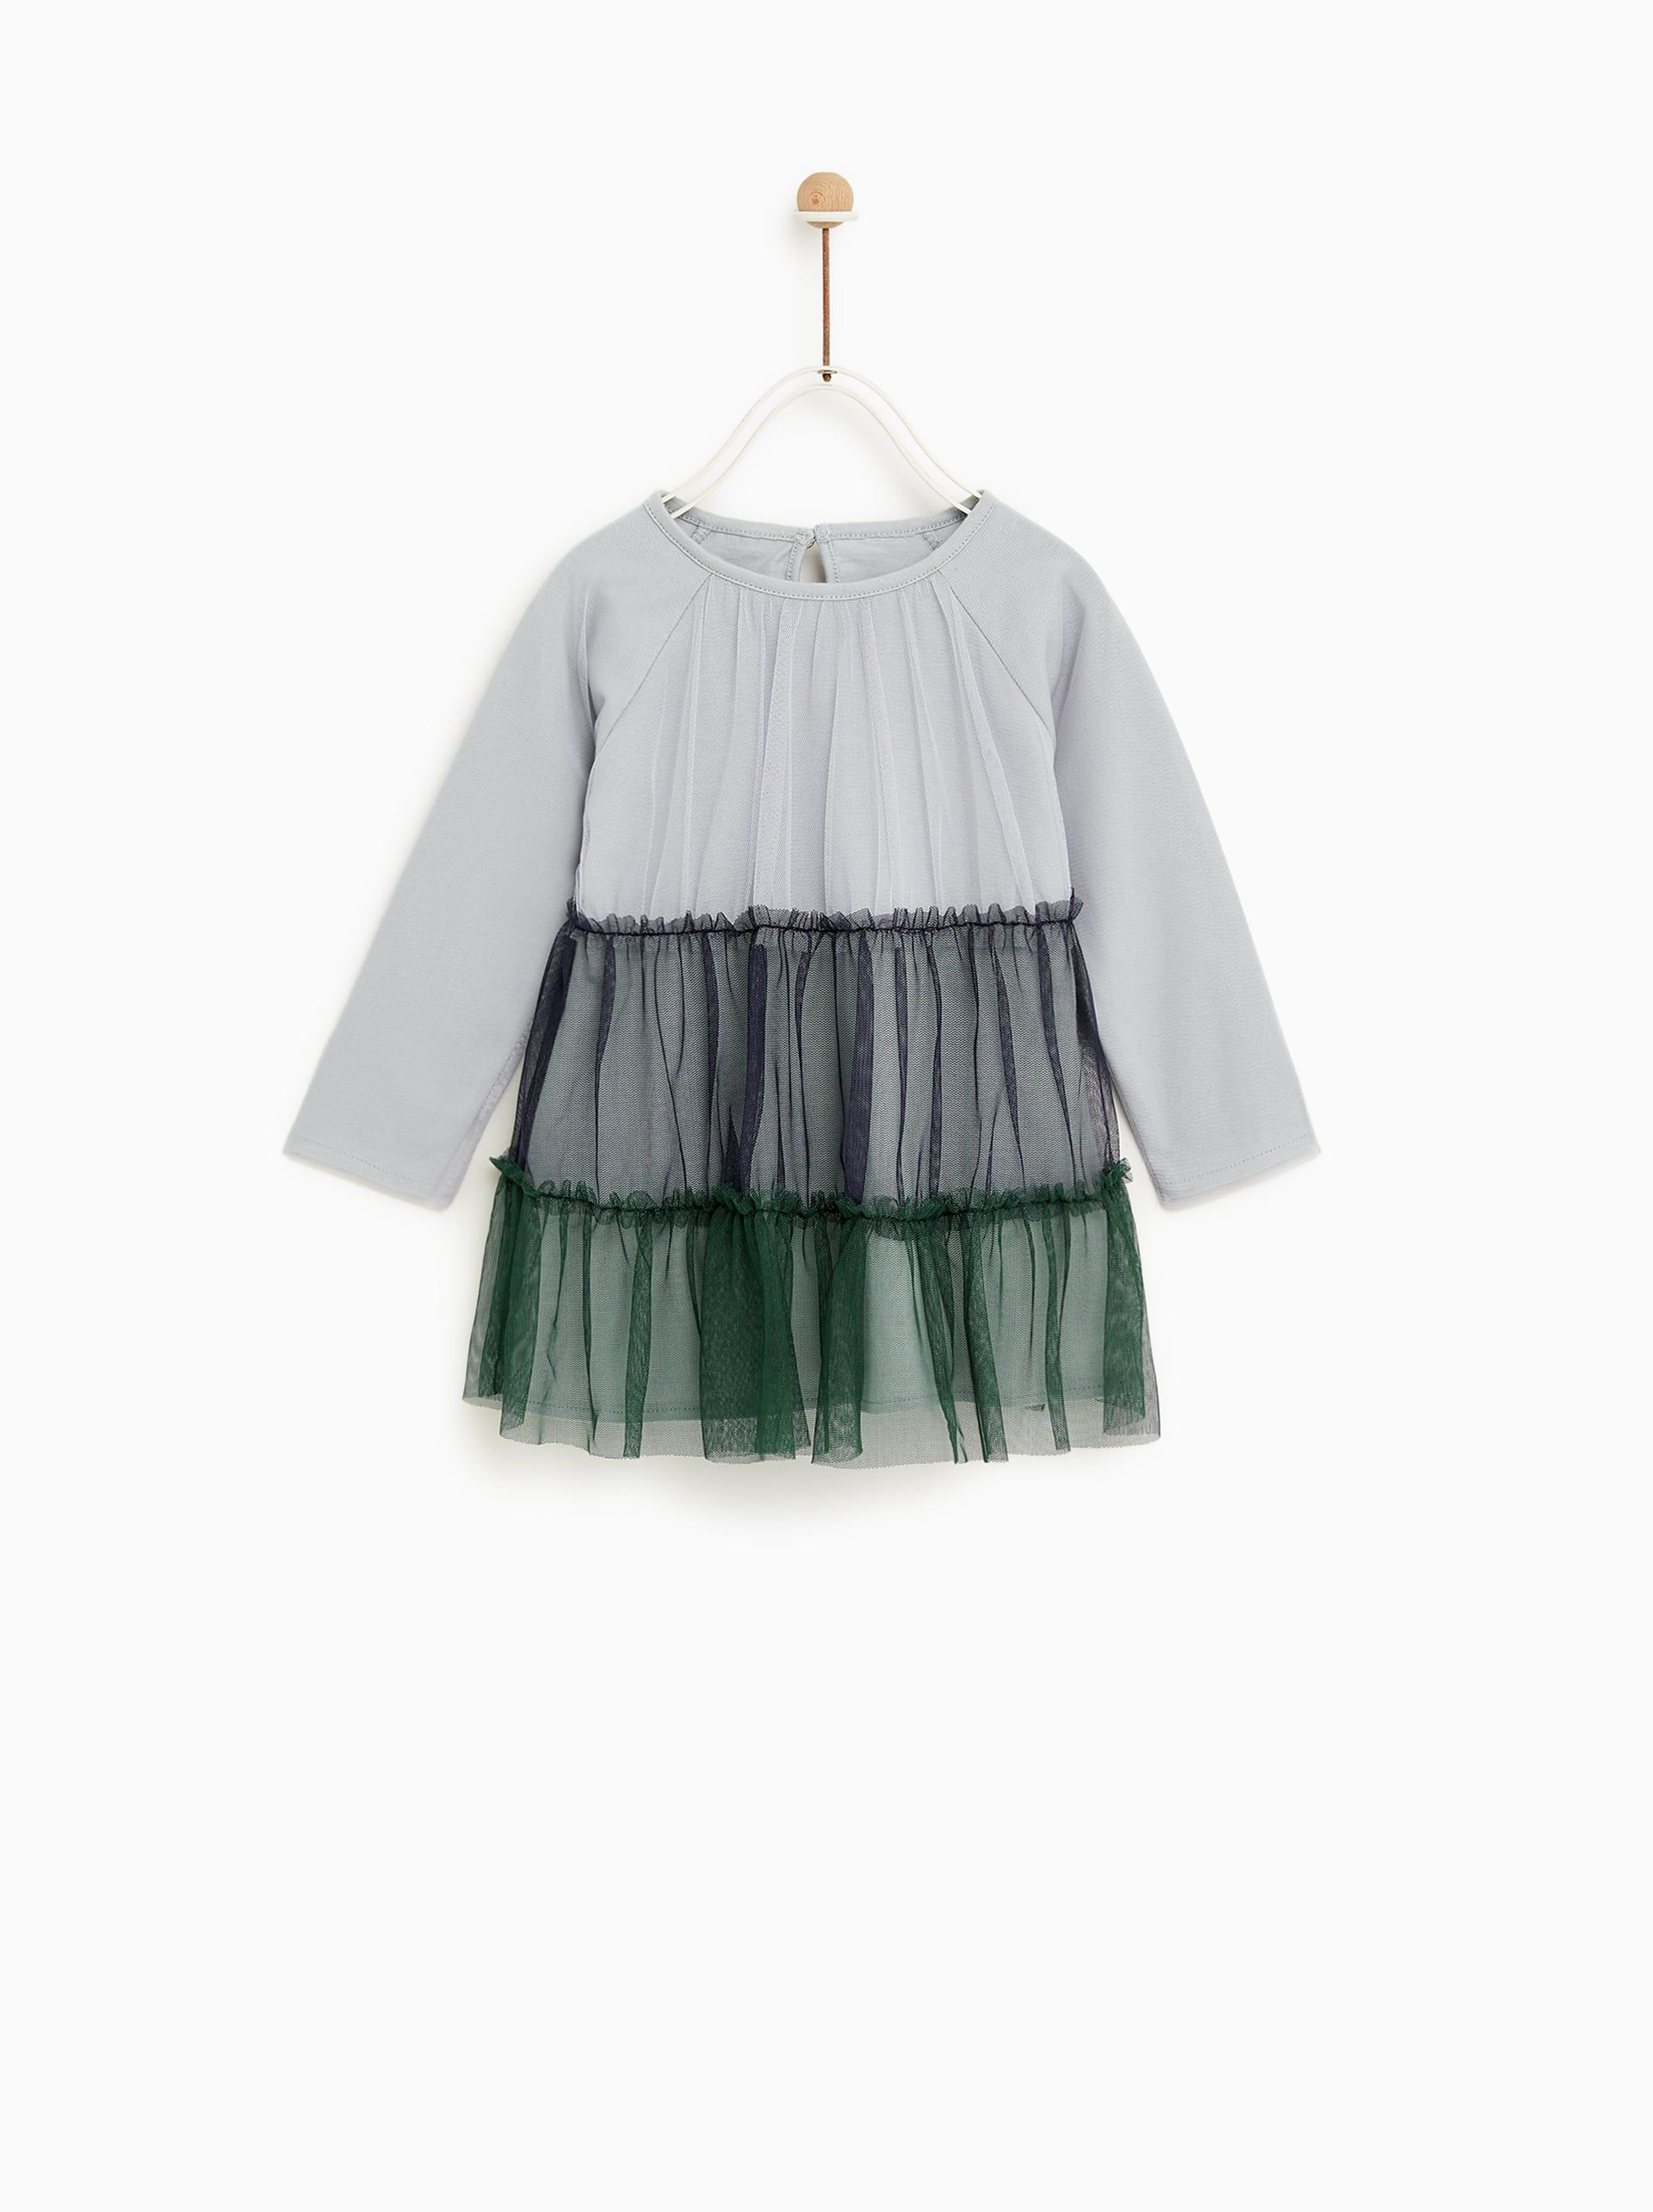 dcabdd905c9 Image 1 of TULLE DRESS from Zara | LITTLE | Tulle dress, Tulle, Baby ...